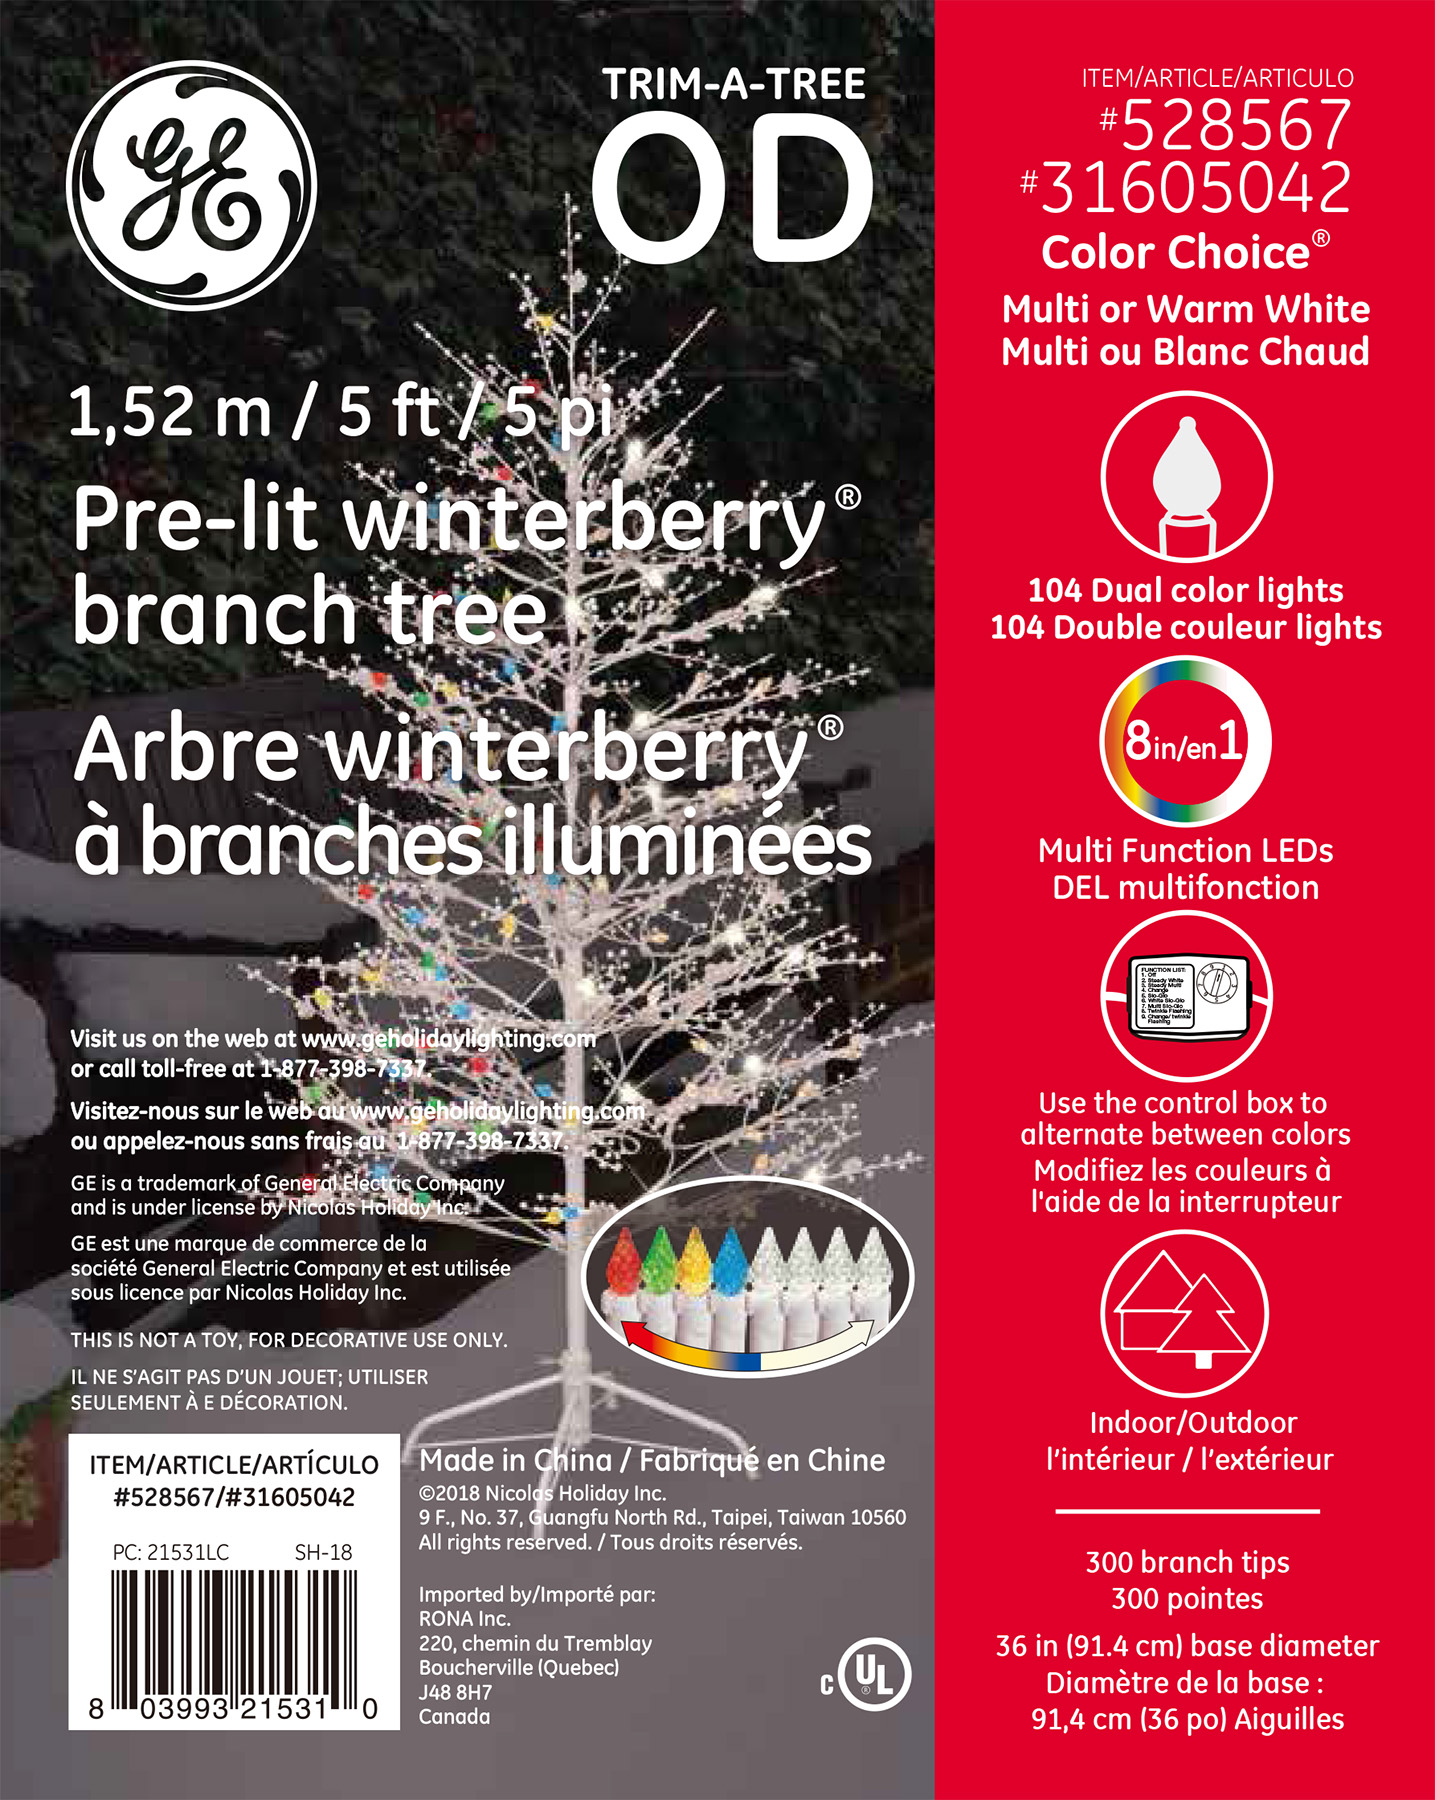 21531 Ge Winterberry 174 Branch Tree 5 Ft Color Choice